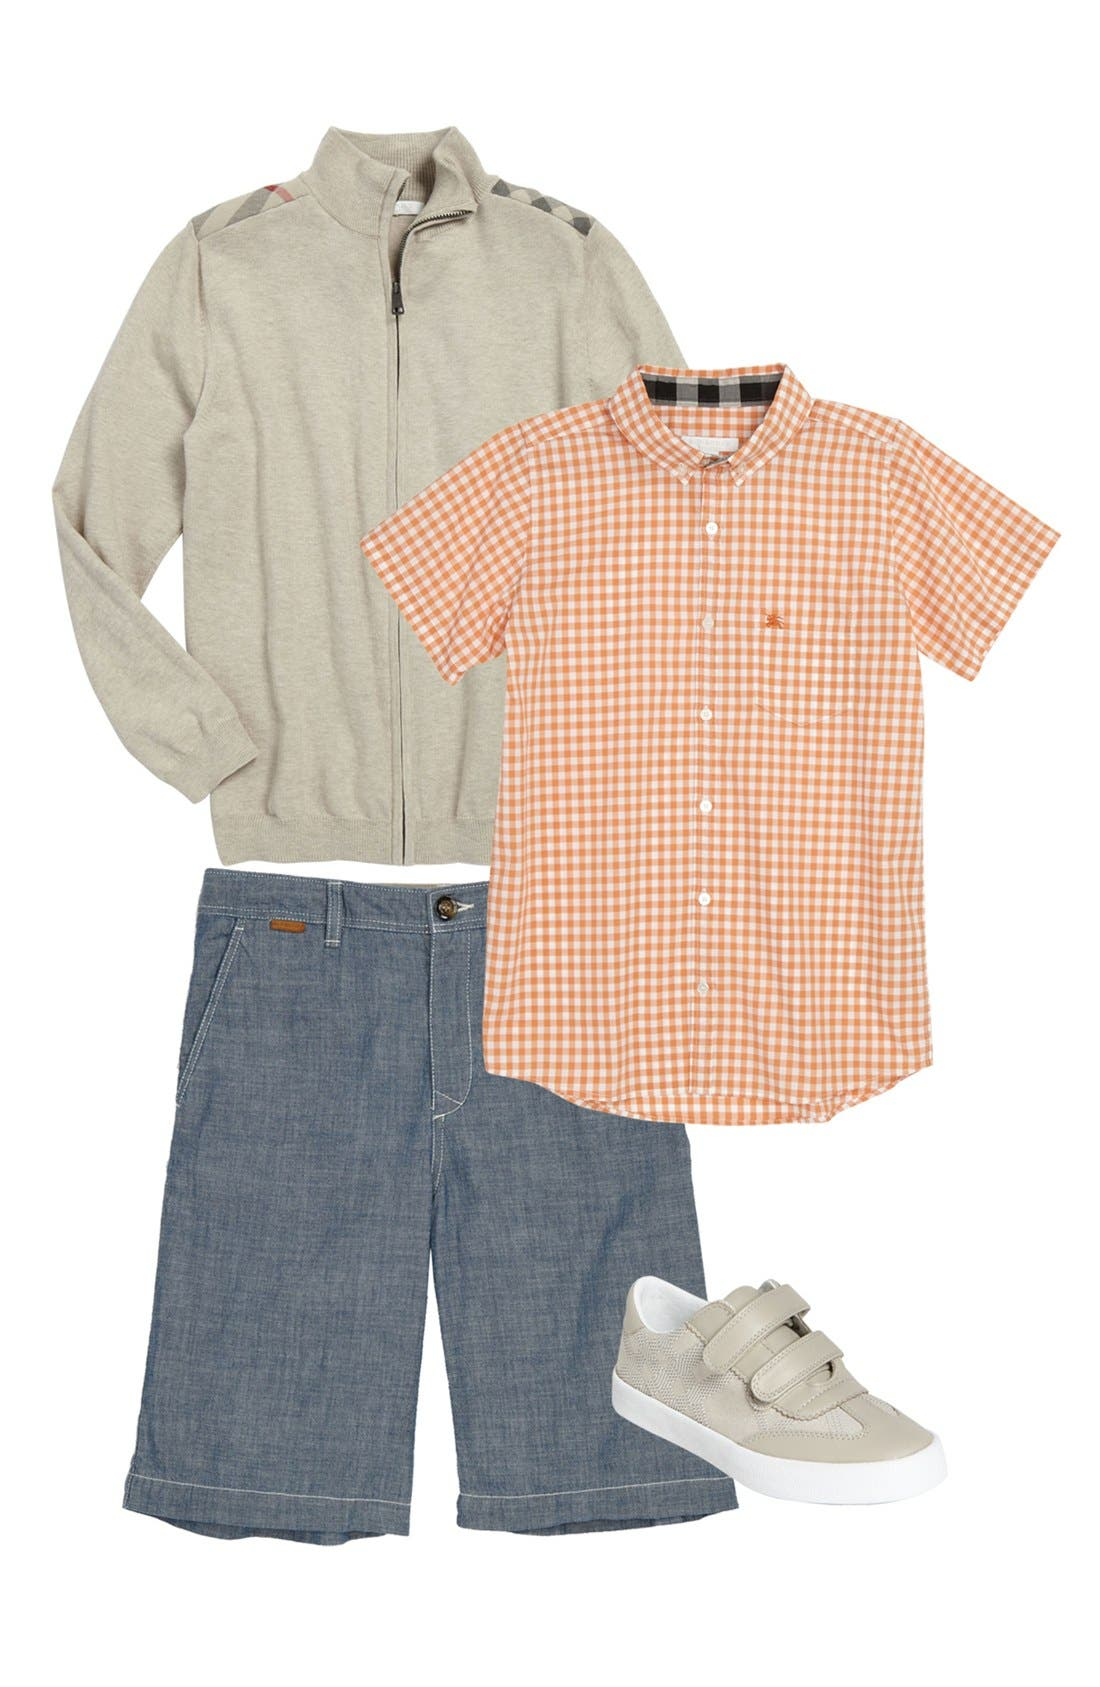 Alternate Image 1 Selected - Burberry Woven Shirt, Sweater, Shorts & Sneaker (Little Boys & Big Boys)